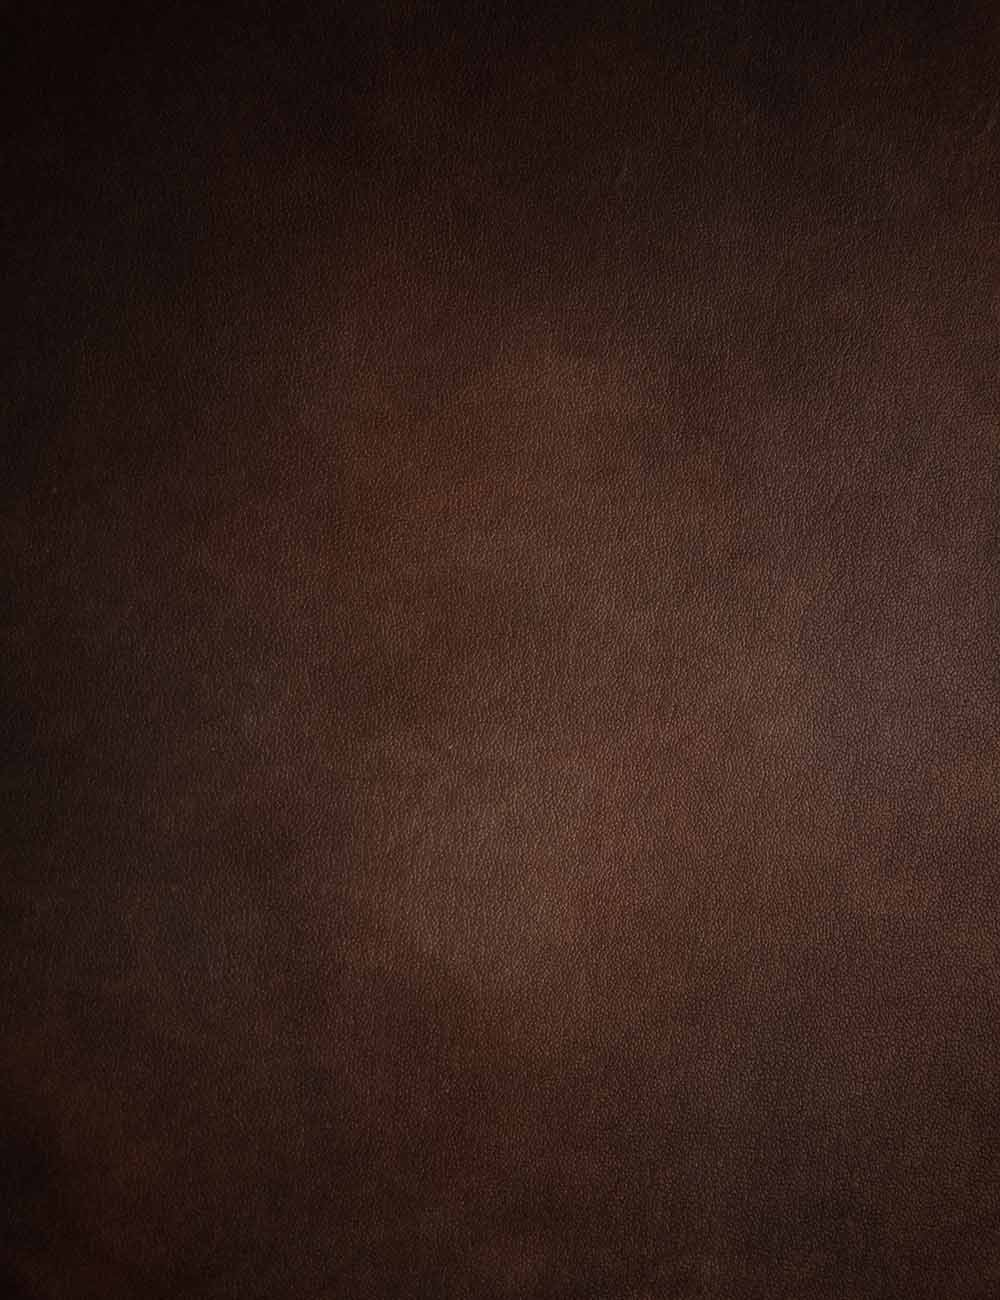 Old Master Dark Brown Detail Texture Photography Backdrop Q-0160